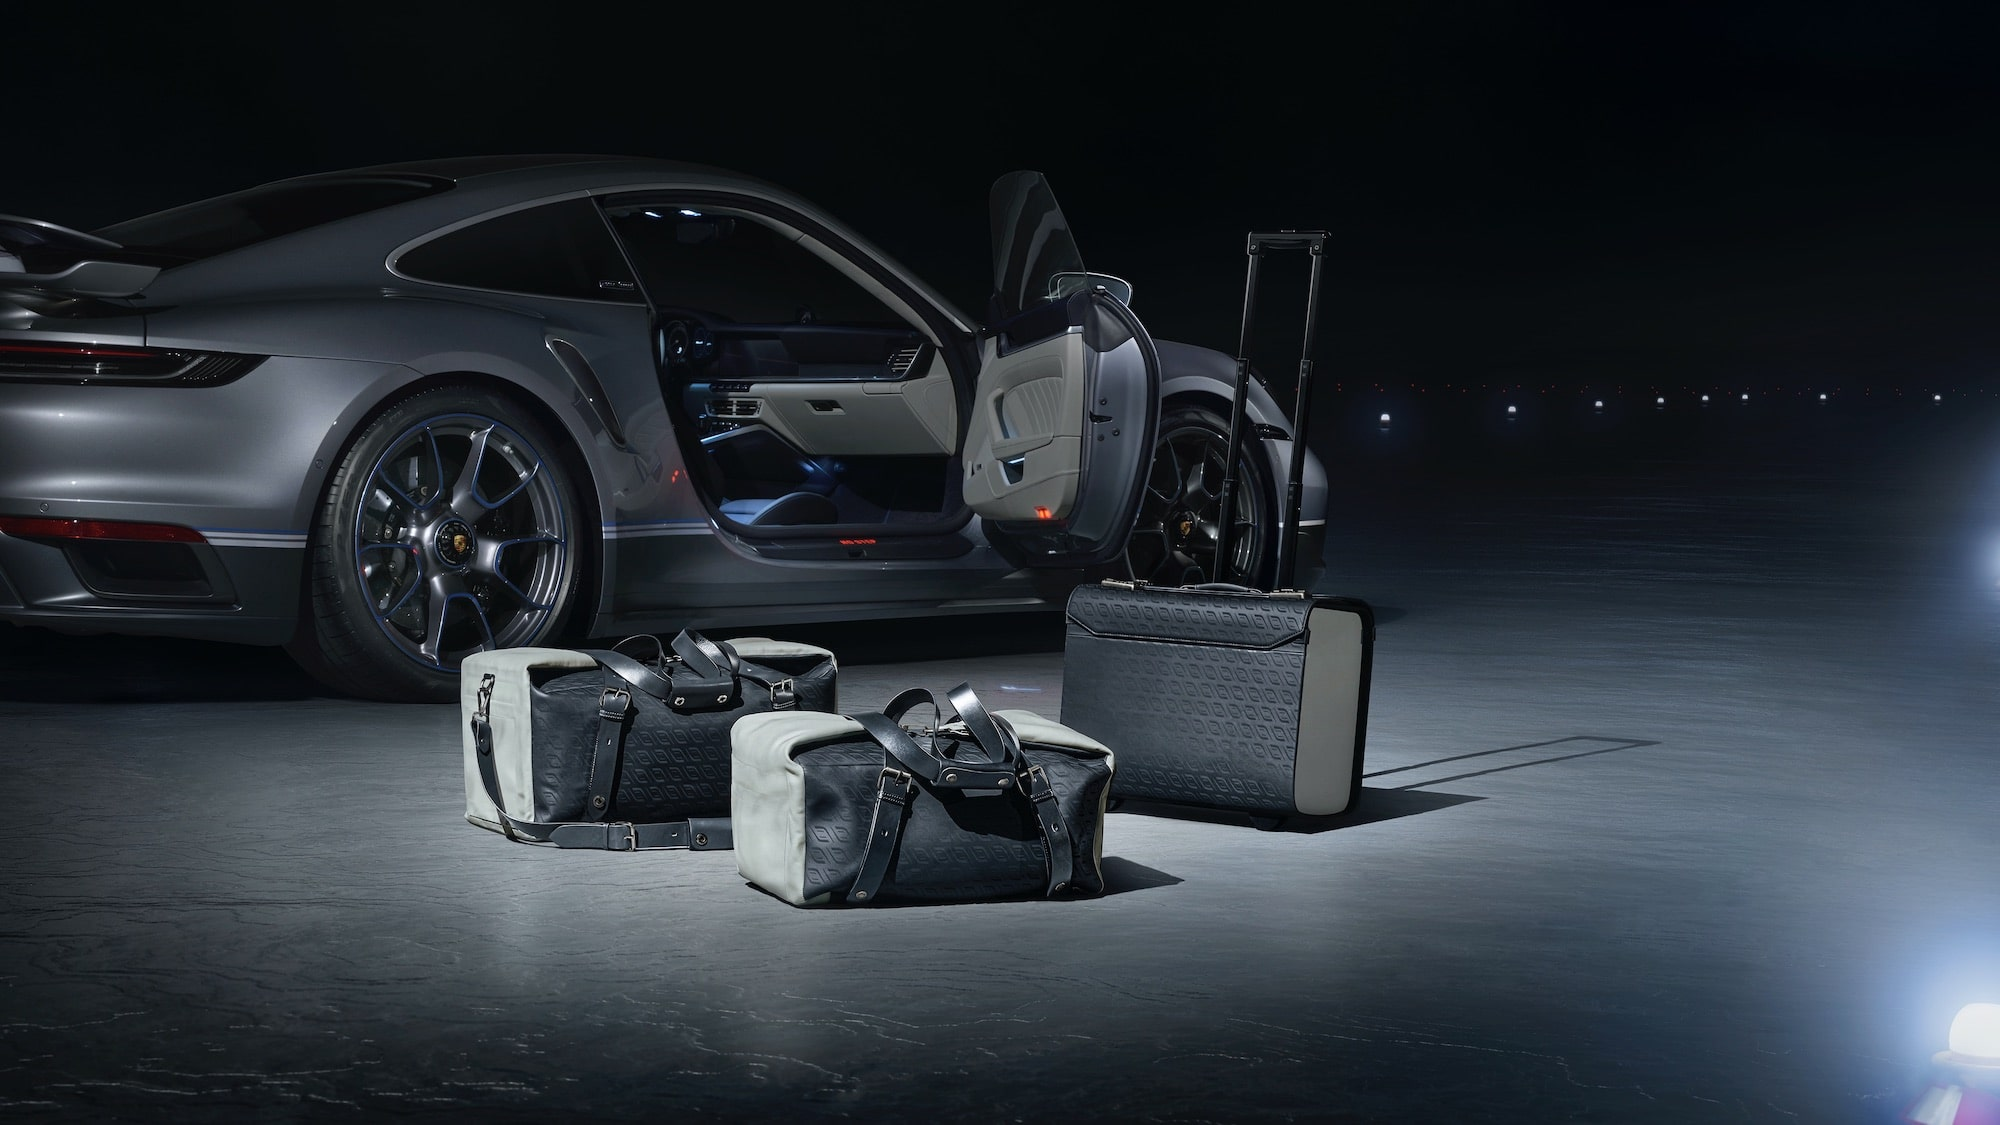 The Duet Bagages of the Porsche and Phenom Collaboration